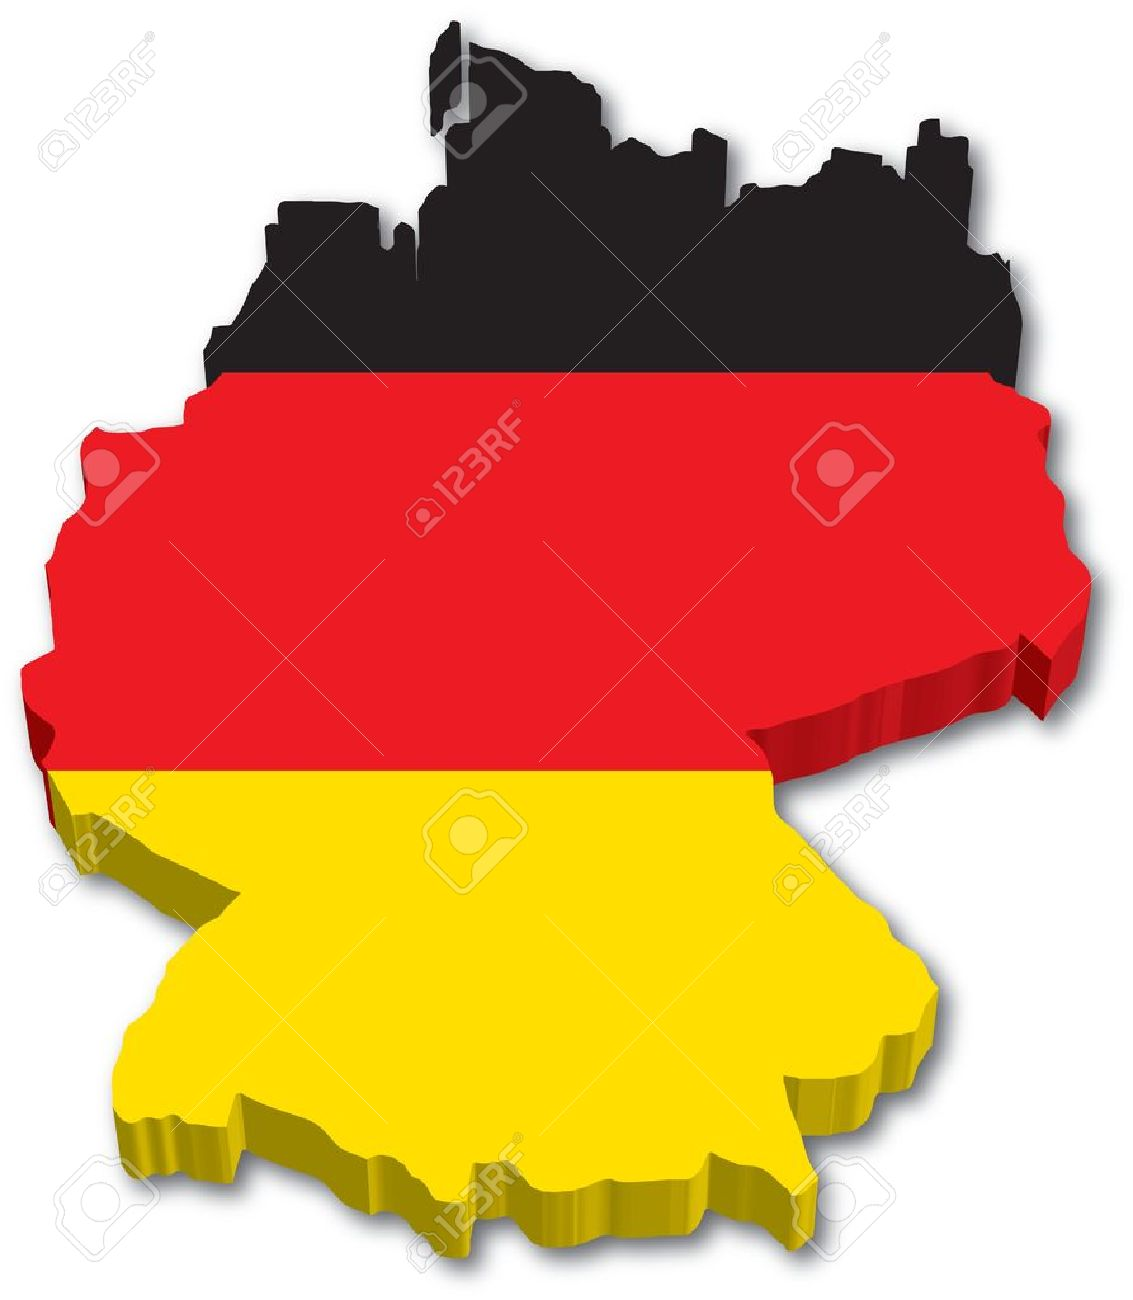 D Germany Map With Flag Illustration On White Background Royalty - Germany map cartoon